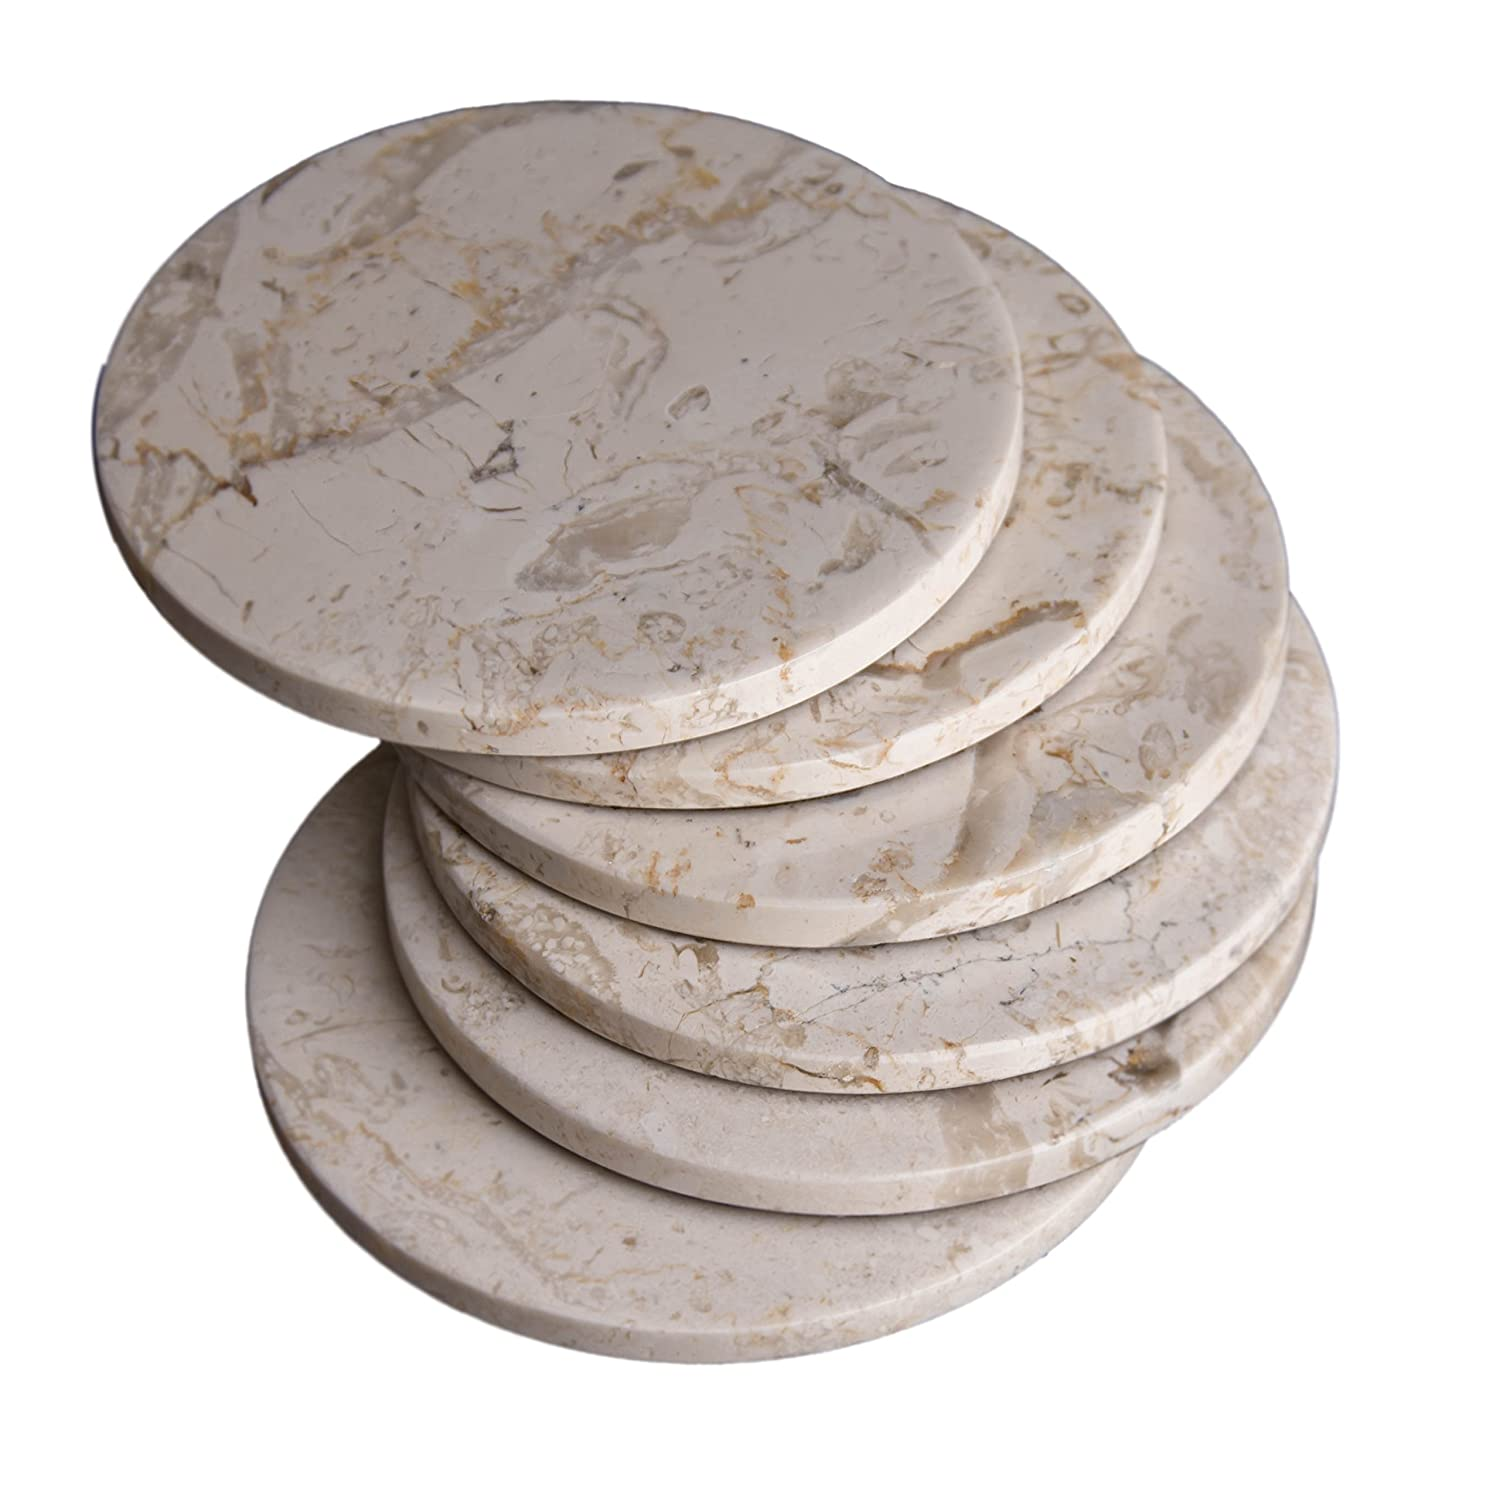 3.5 Inches Beige Marble Stone Coasters 9 cm CraftsOfEgypt Set of 4 Protection from Drink Rings in Diameter Polished Coasters